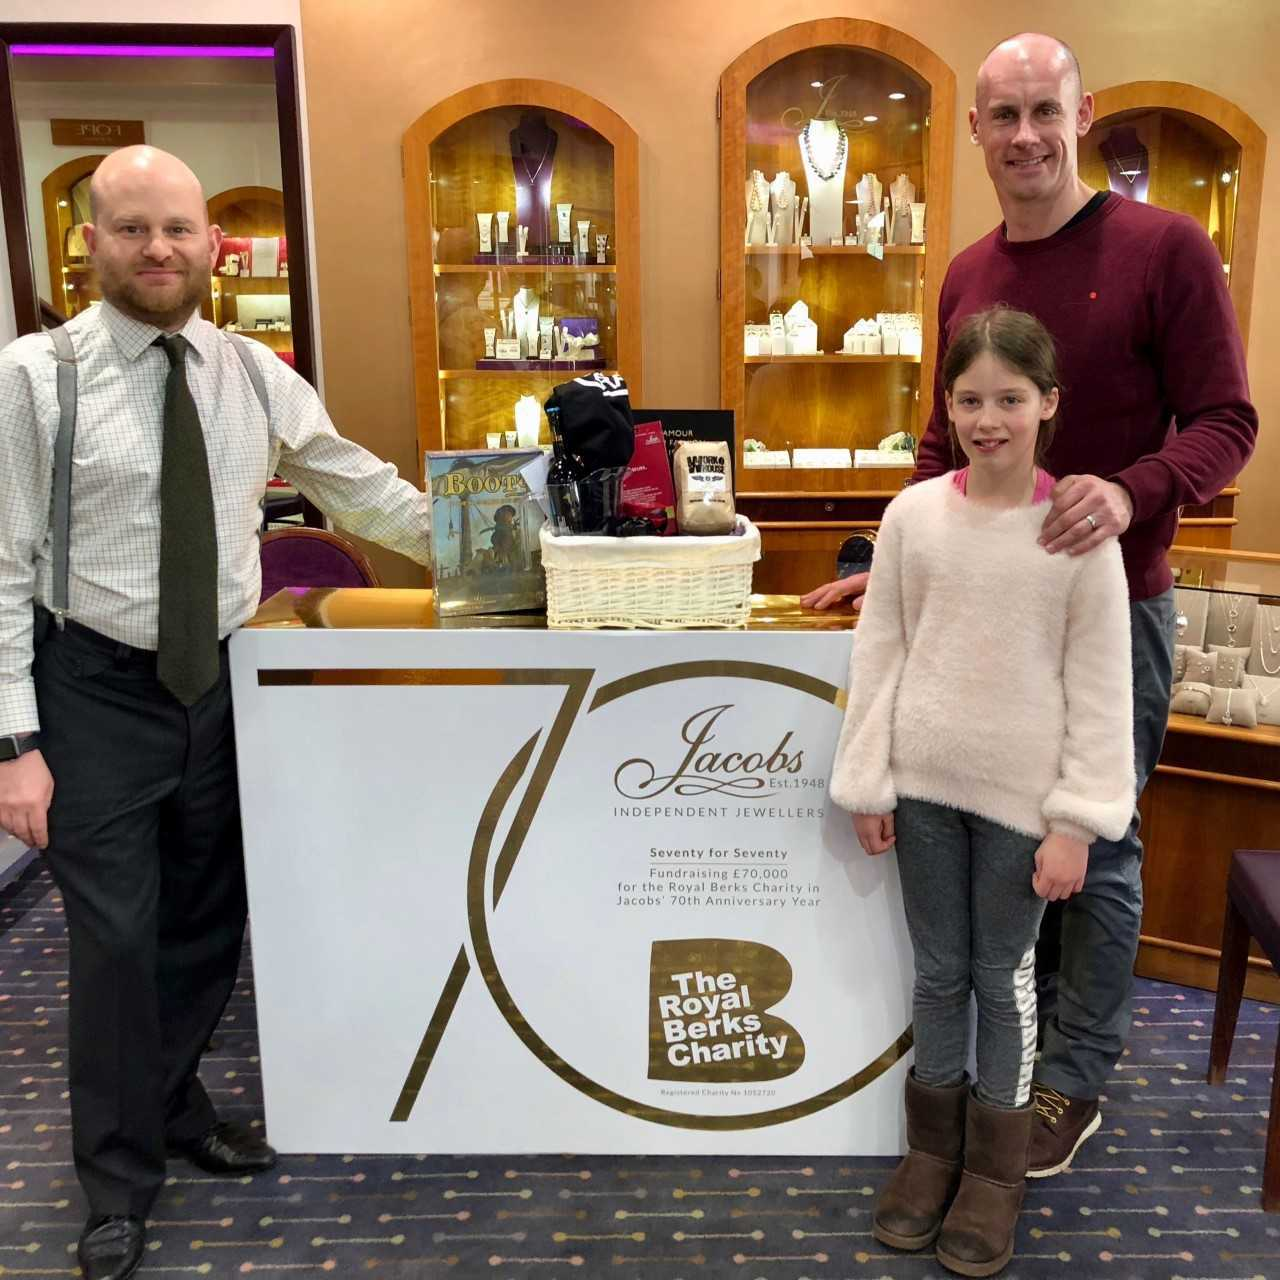 Jewellers aim to raise £70,000 for Royal Berks